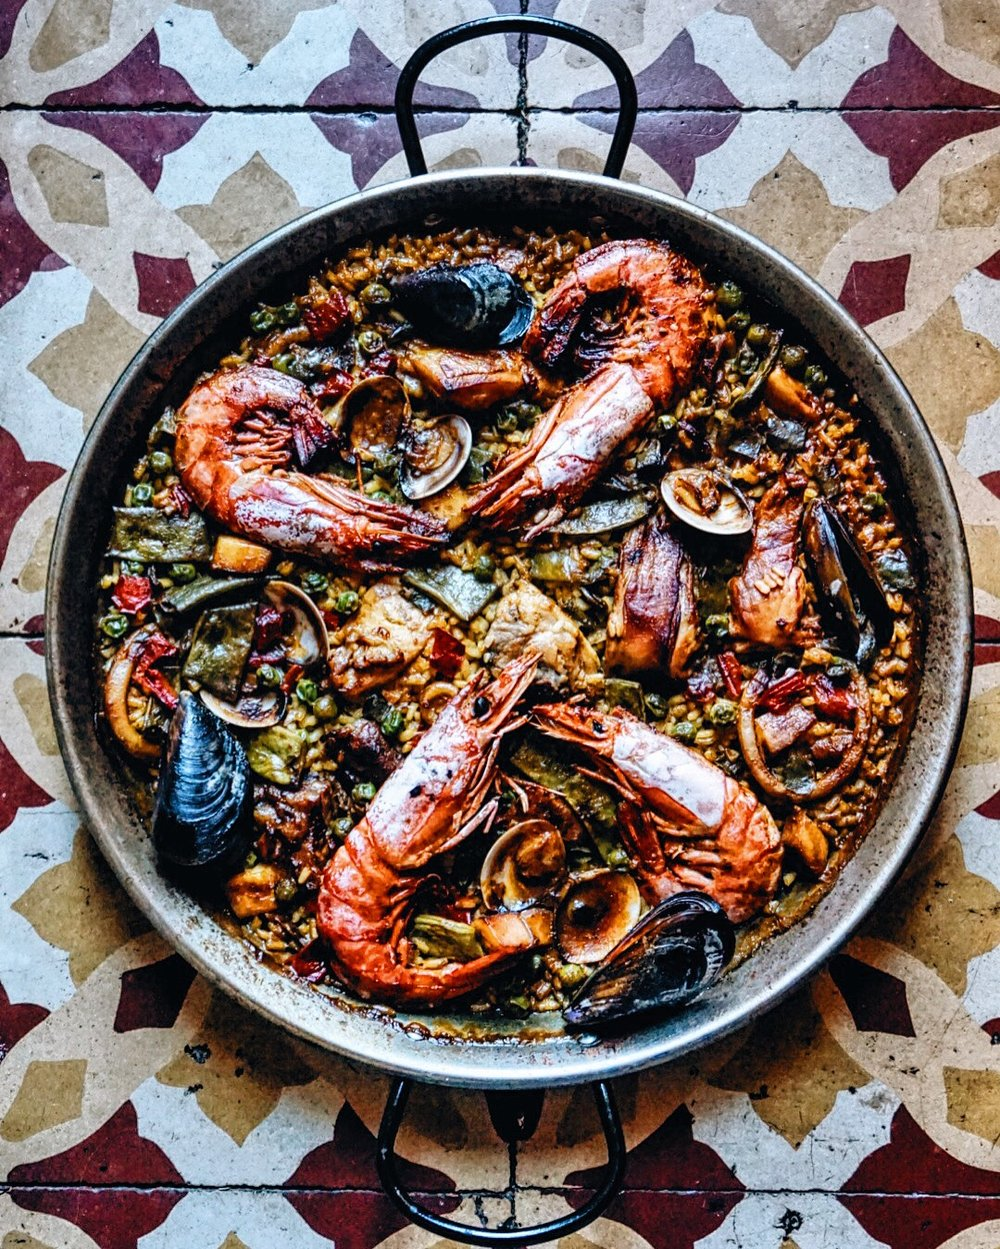 Paella from La Garlana